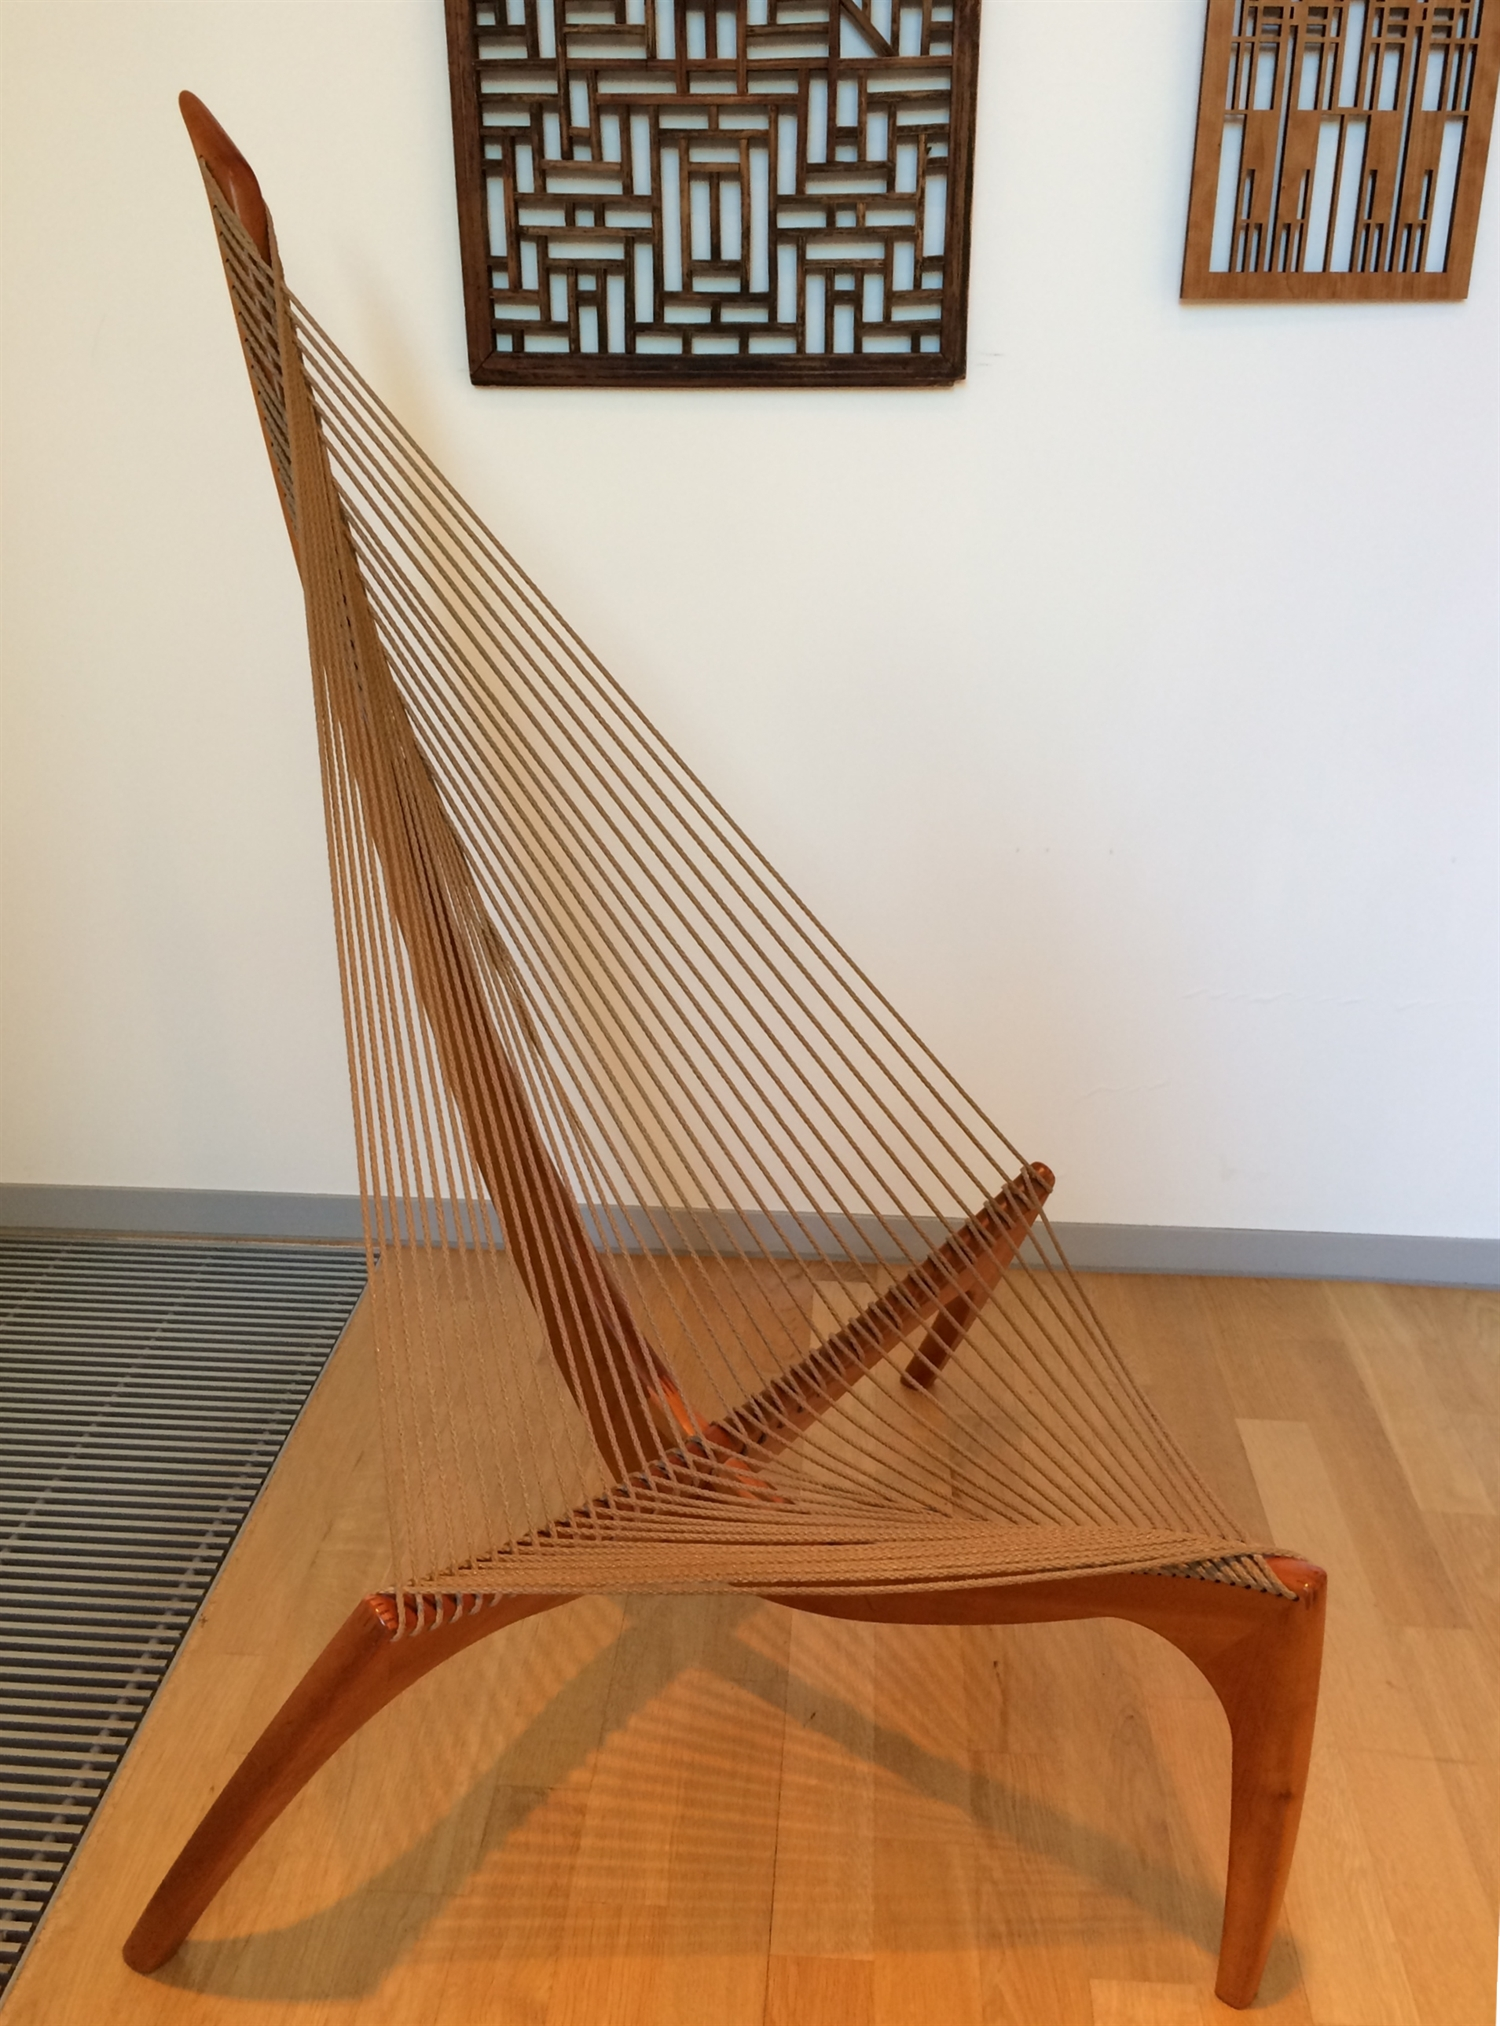 7 Harp or String chair Jorgen Hovelskov 1958 arithmeum_bonn_design_art_exhibition_minimalist_interior_style_vintage_furniture_ikony_designu_forelements_blog